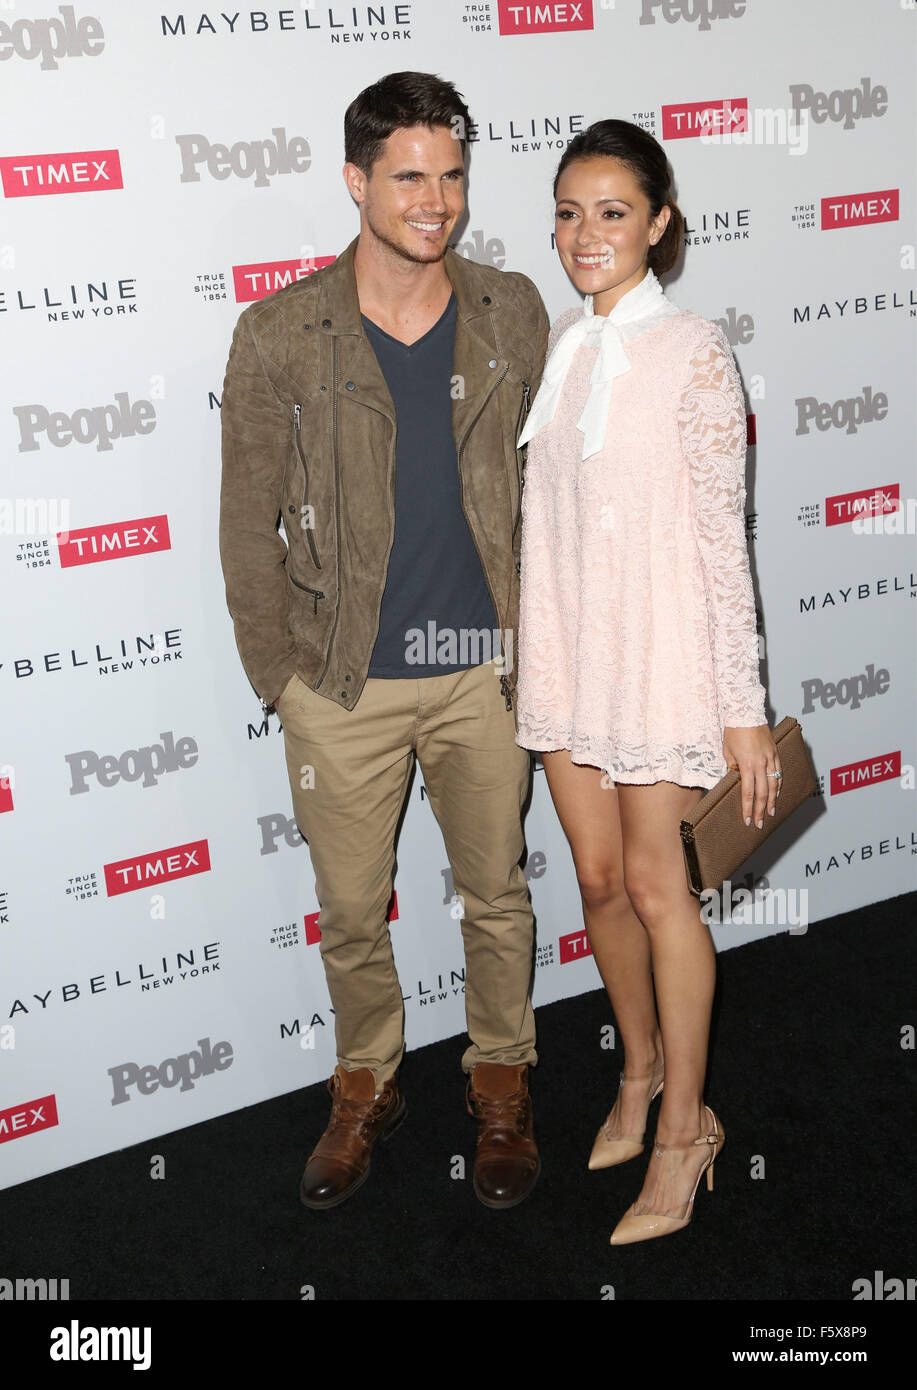 People magazine's 'Ones to Watch' Party - Arrivals Featuring